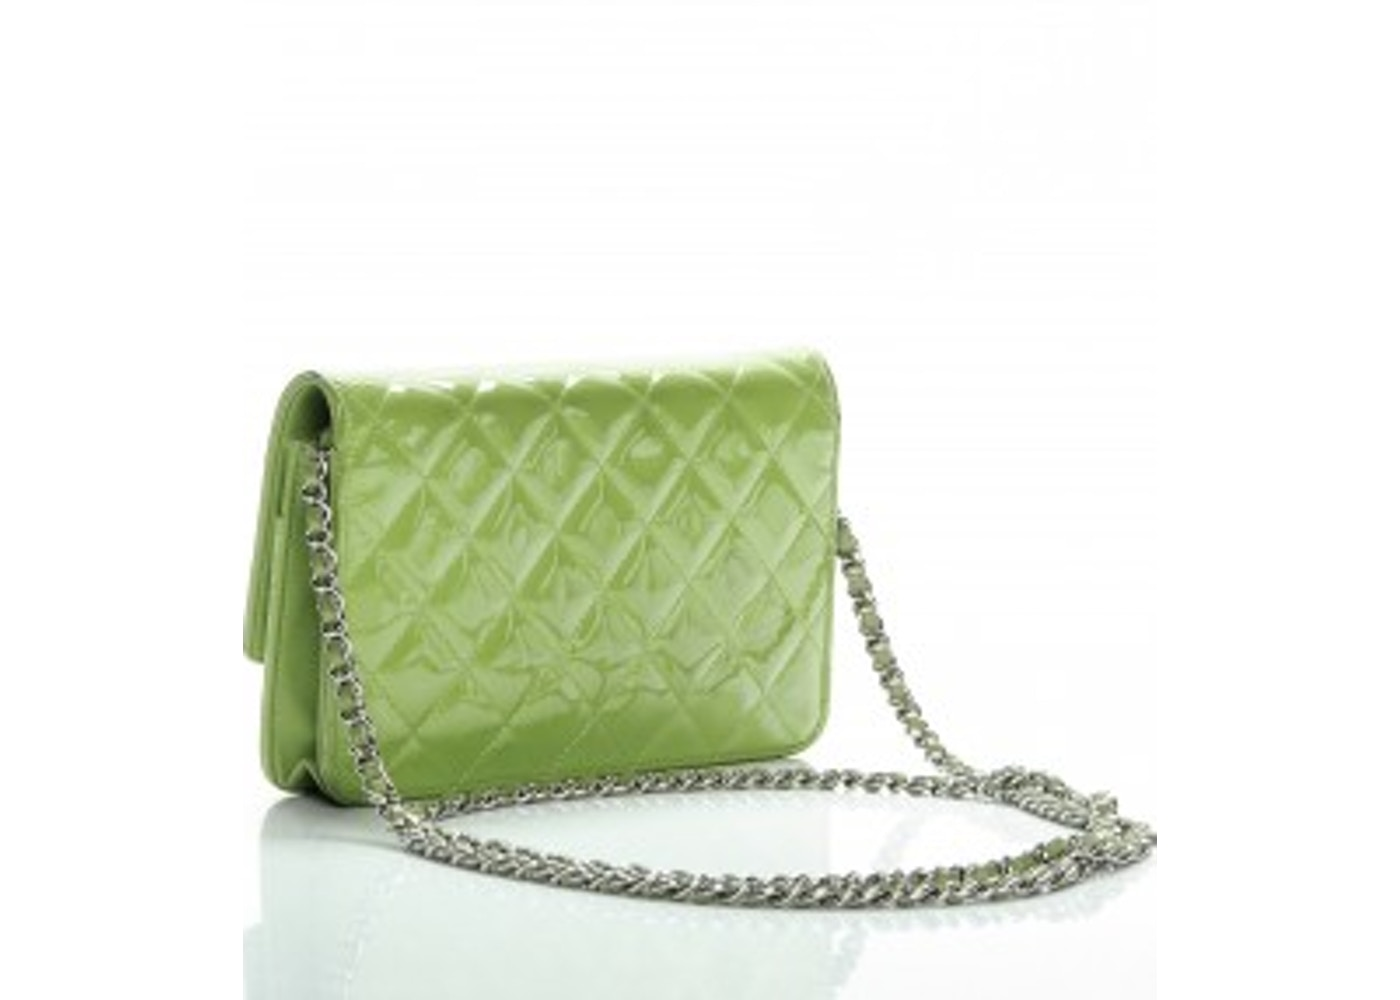 8e90c99f34f620 Chanel Brilliant Wallet On Chain Diamond Quilted Glossy Bright Green